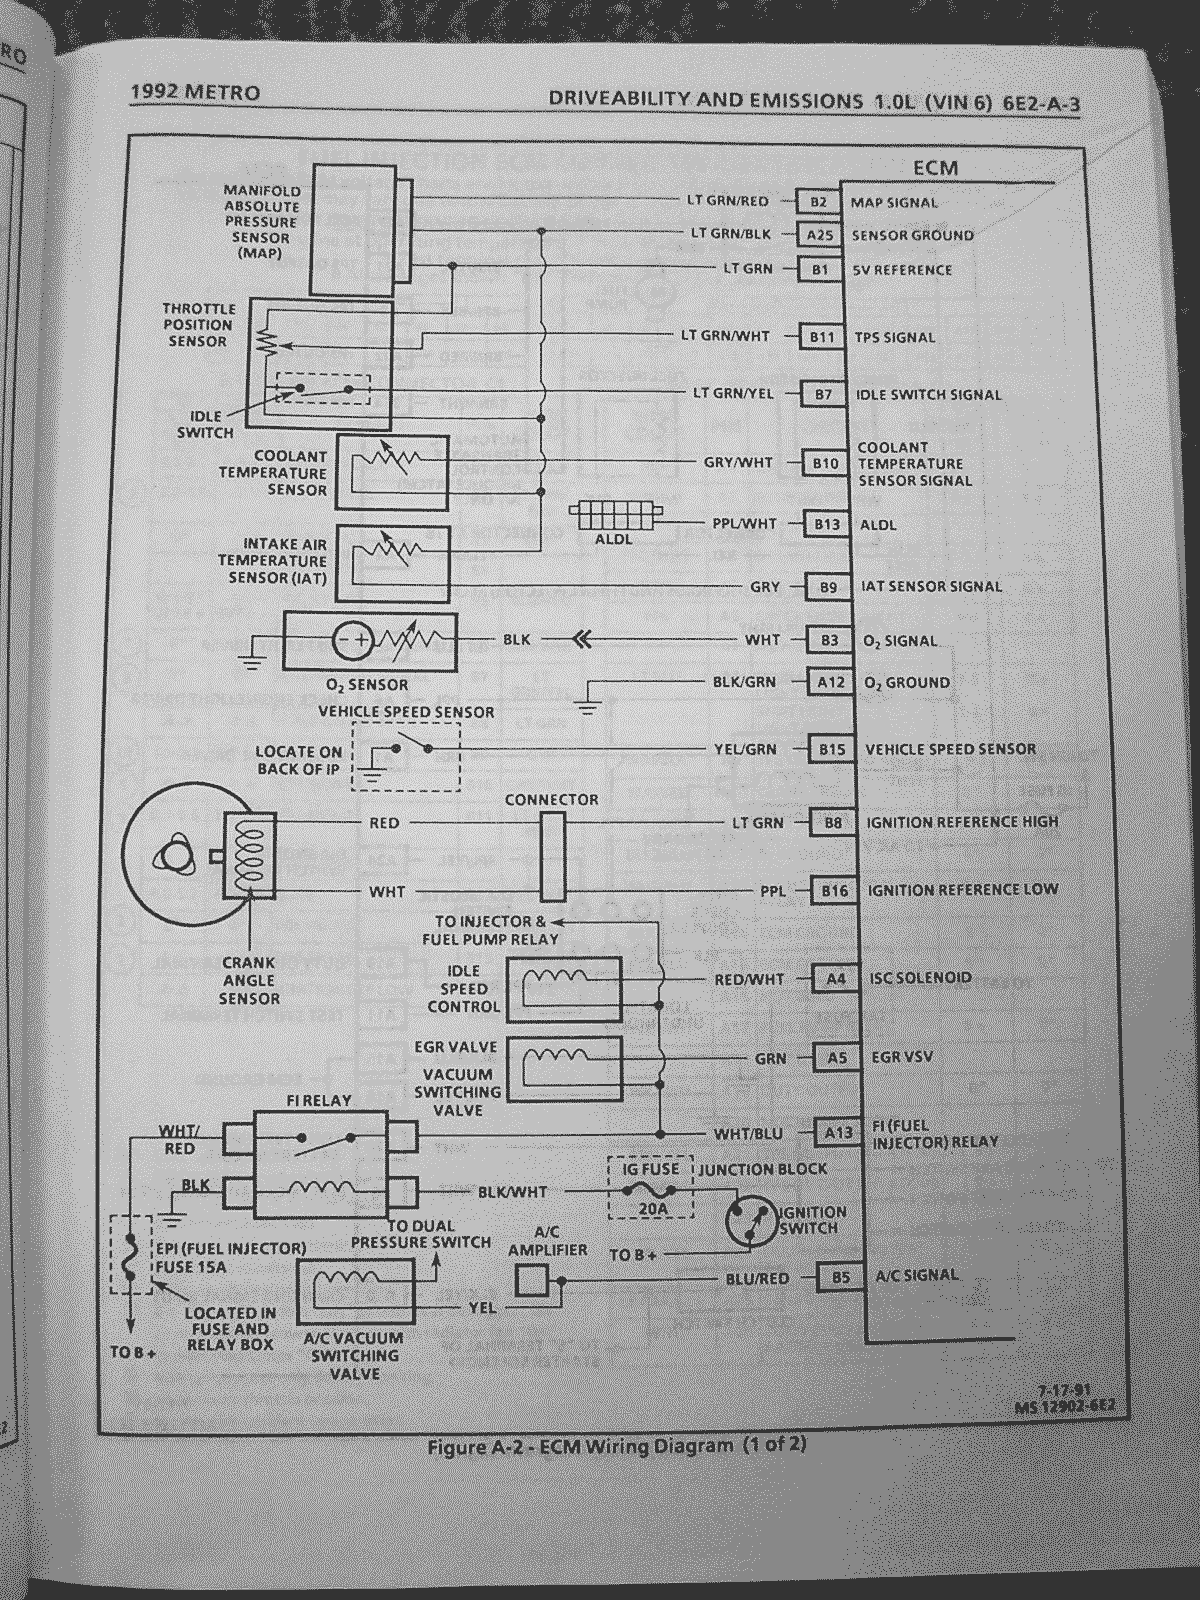 geo metro and suzuki swift wiring diagrams metroxfi com 92 94 metro 3 cylinder ecu pinouts